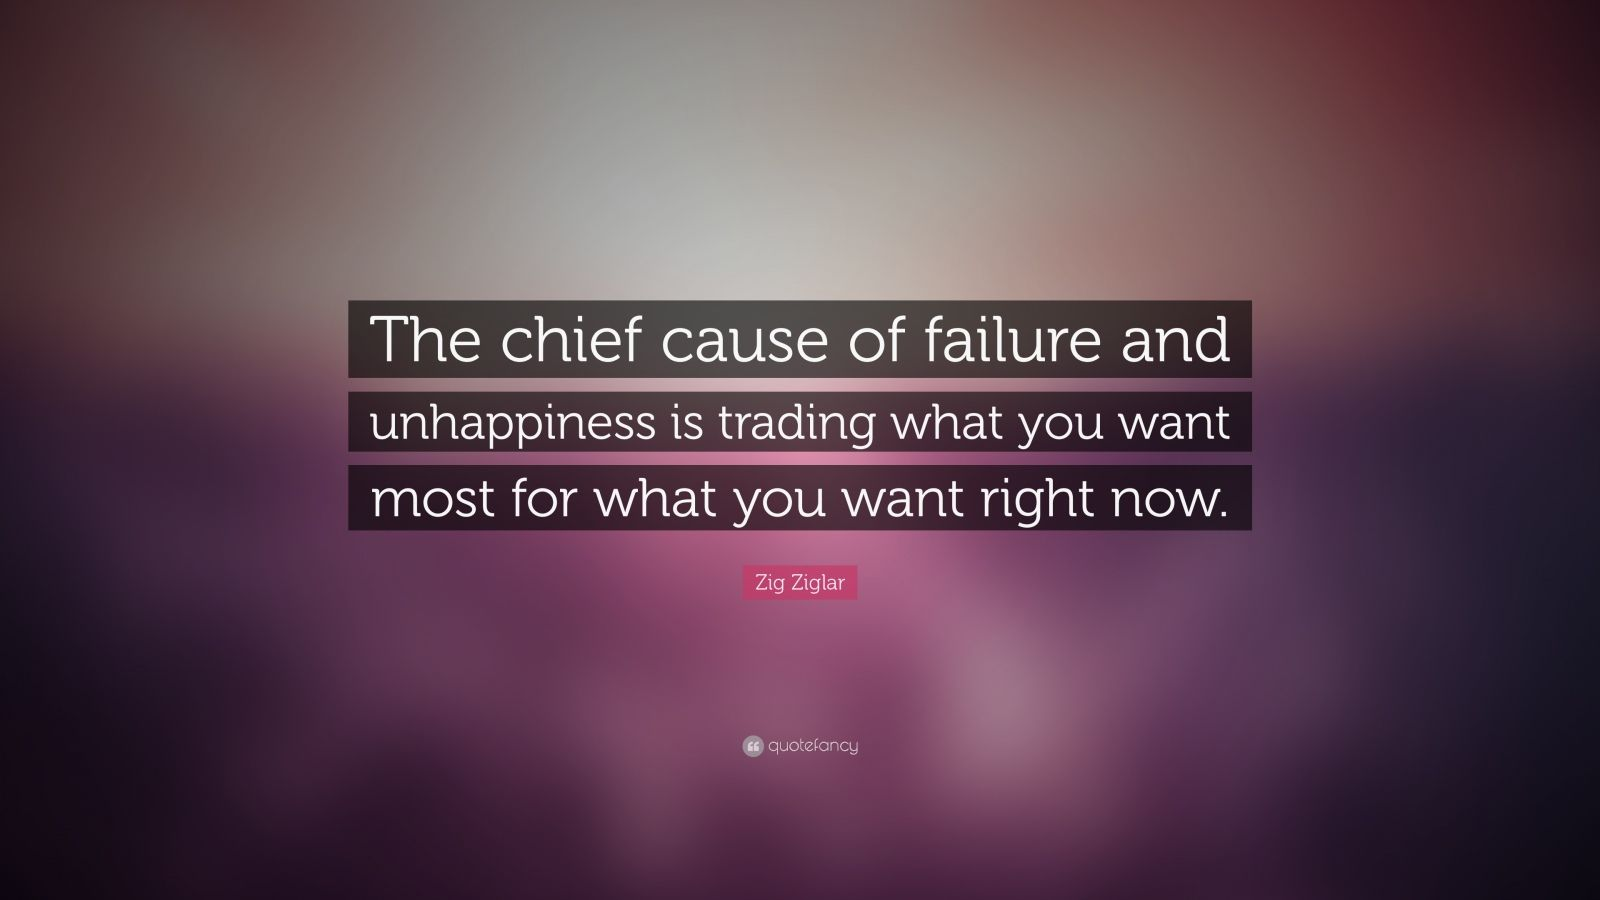 """Zig Ziglar Quote: """"The chief cause of failure and unhappiness is trading what you want most for what you want right now."""""""